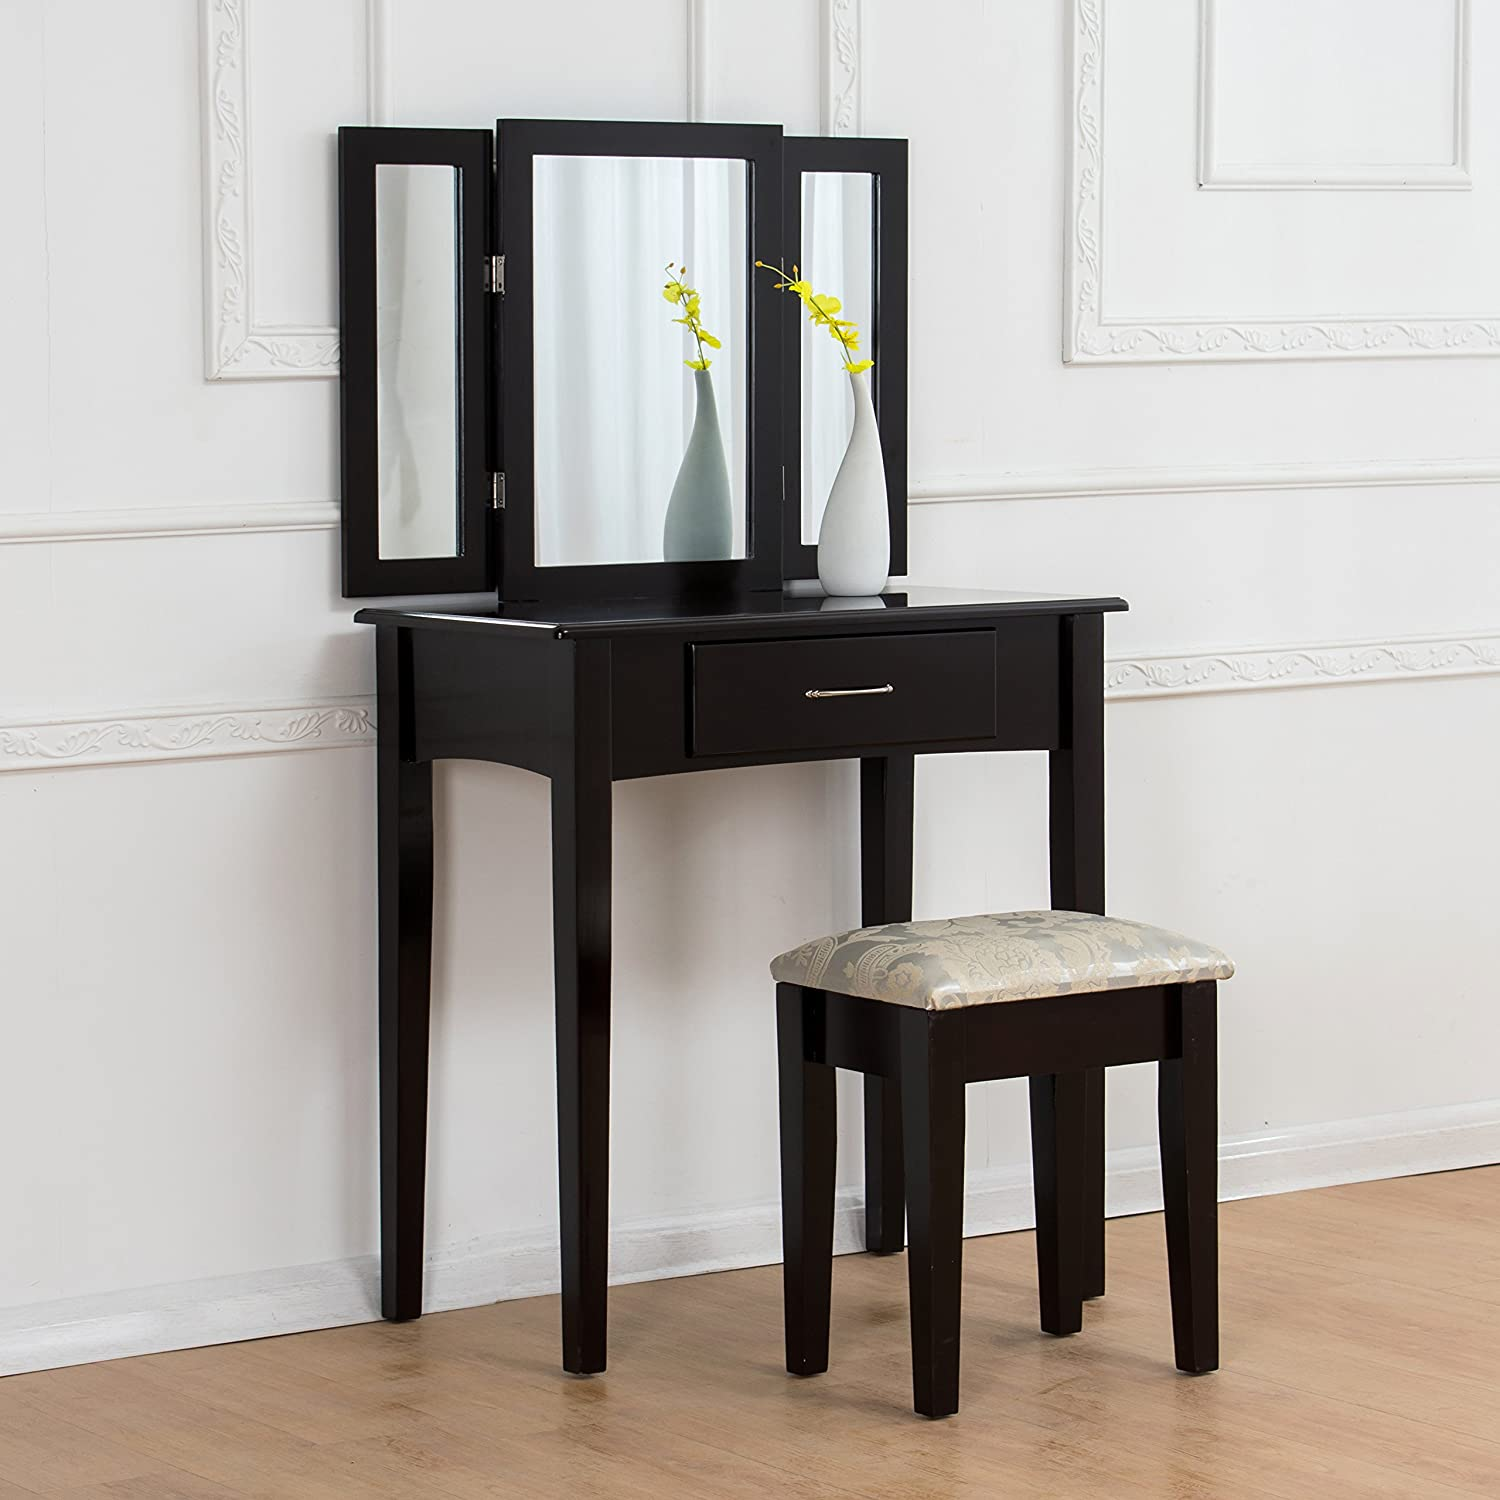 CherryTree Furniture Dressing Table 3 Way Mirrors Triple Mirror Makeup Dresser Set with Stool (Black) Cherry Tree Furniture